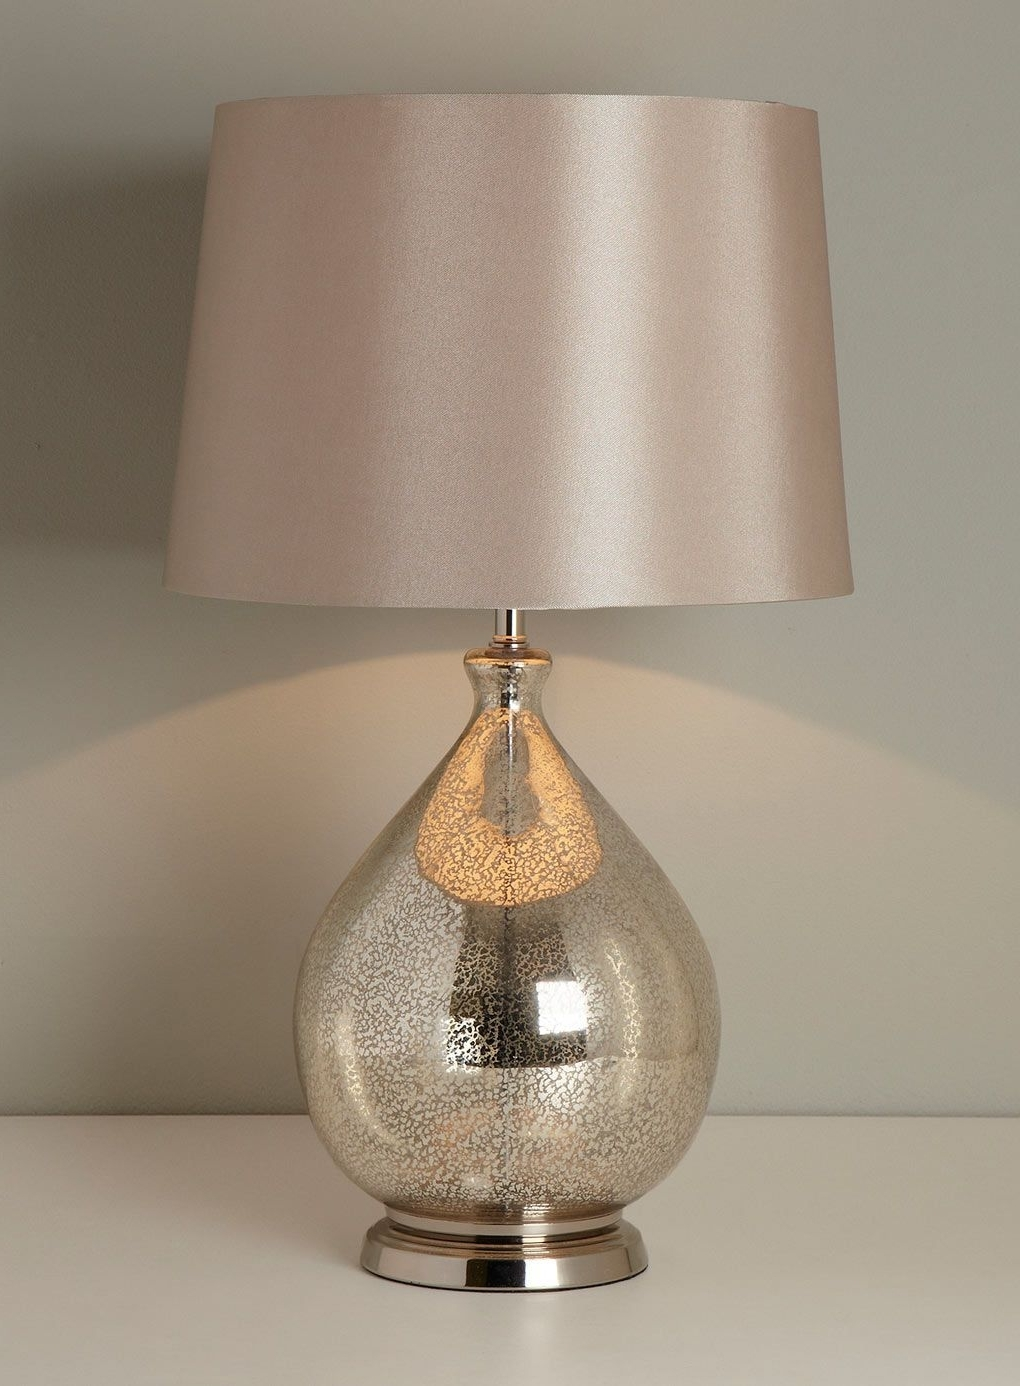 Battery Operated Living Room Table Lamps Throughout Most Current Battery Operated Living Room Table Lamps Modern House, Hurricane (View 7 of 15)